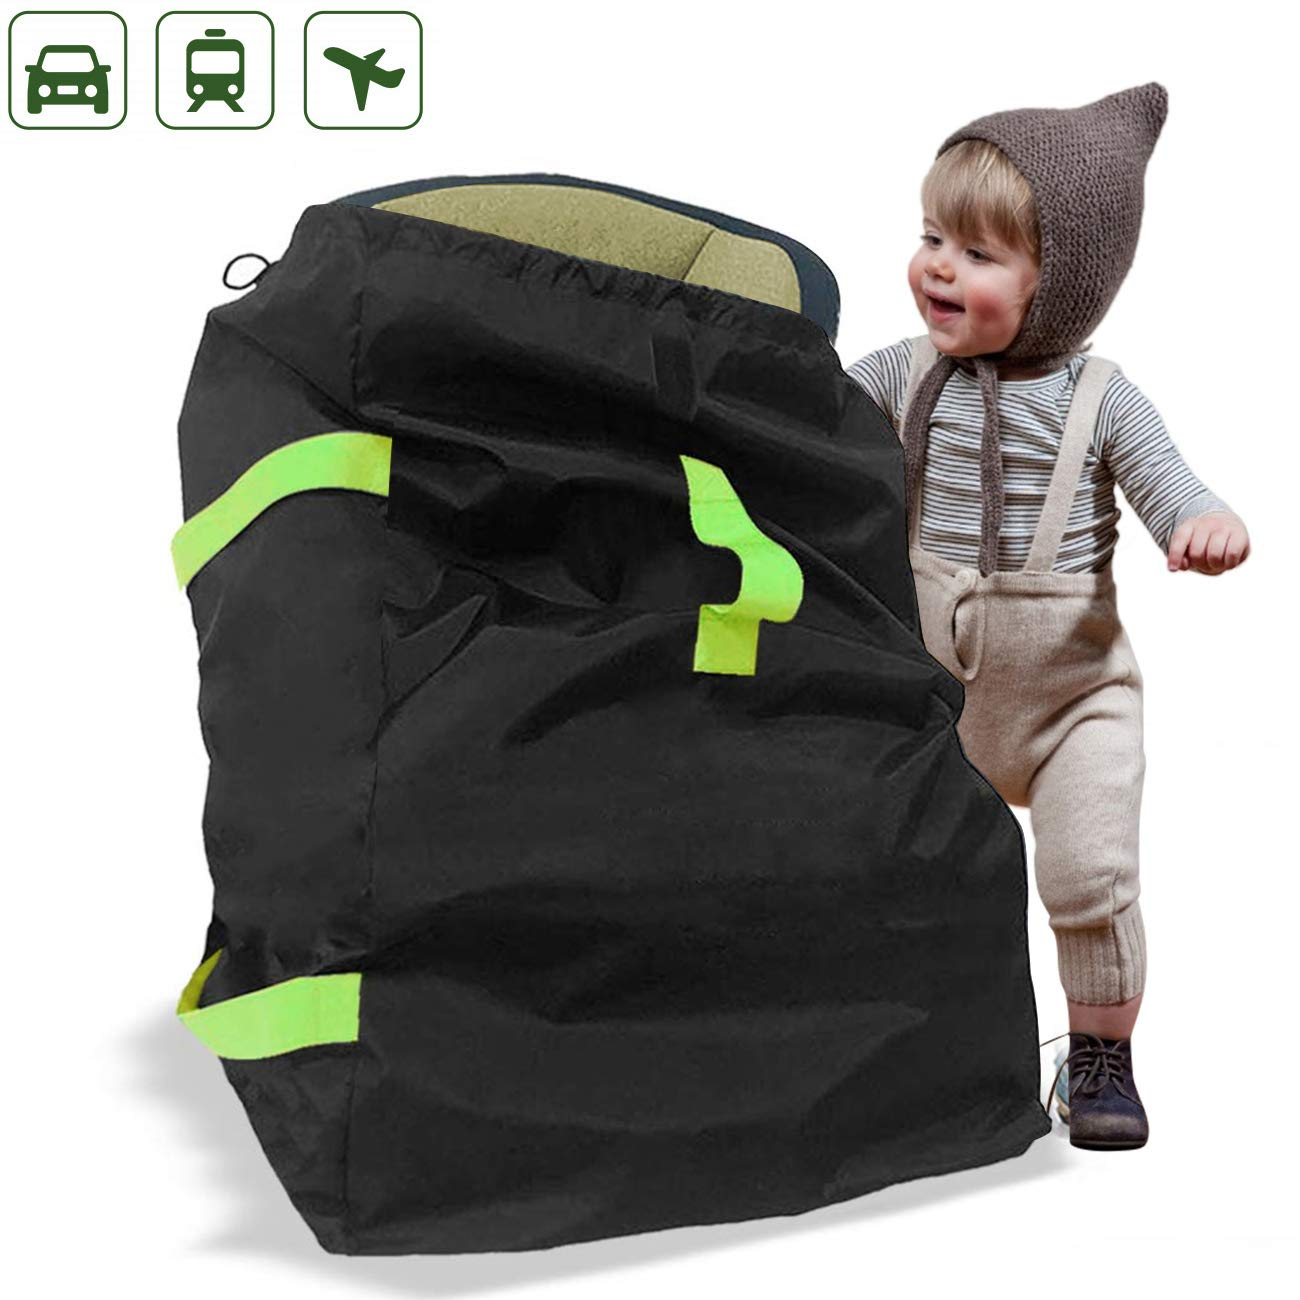 Jolitac Car Seat Travel Bag and Carrier Fit Most Carseat Models, Gate Check Bag for Baby Seats on Travel, Portable Car Seats Tote - Including Backpack Straps, Side Pocket and Storage Pouch